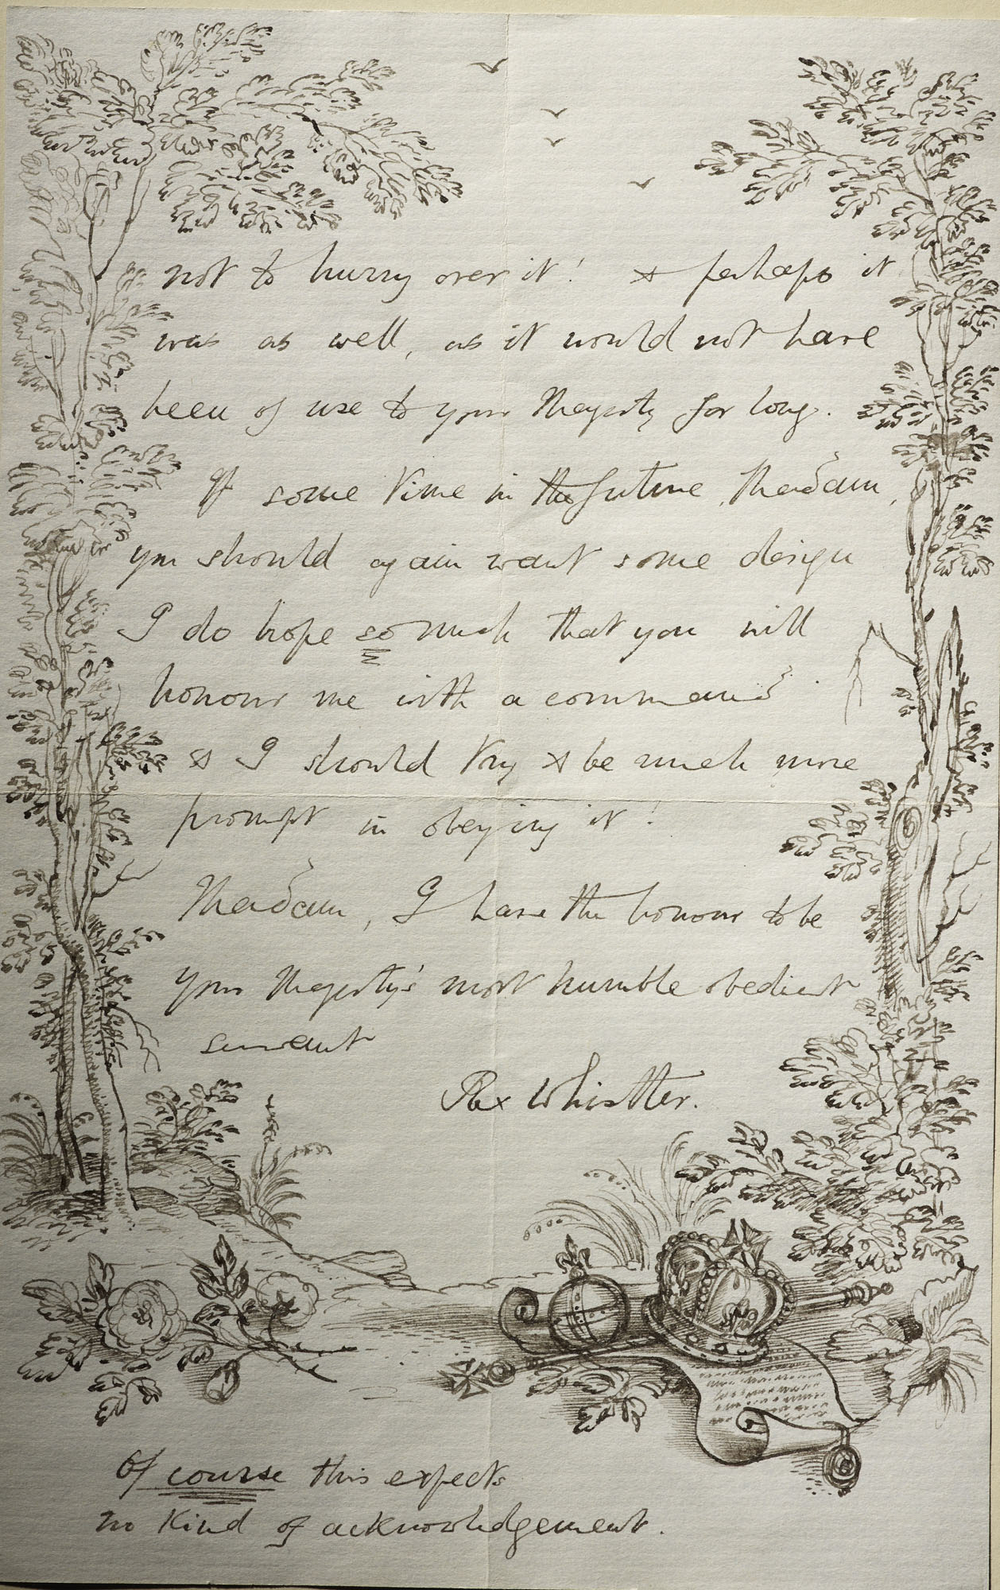 Hand-illustrated letter from Rex Whistler to Queen Elizabeth, 24 January 1937